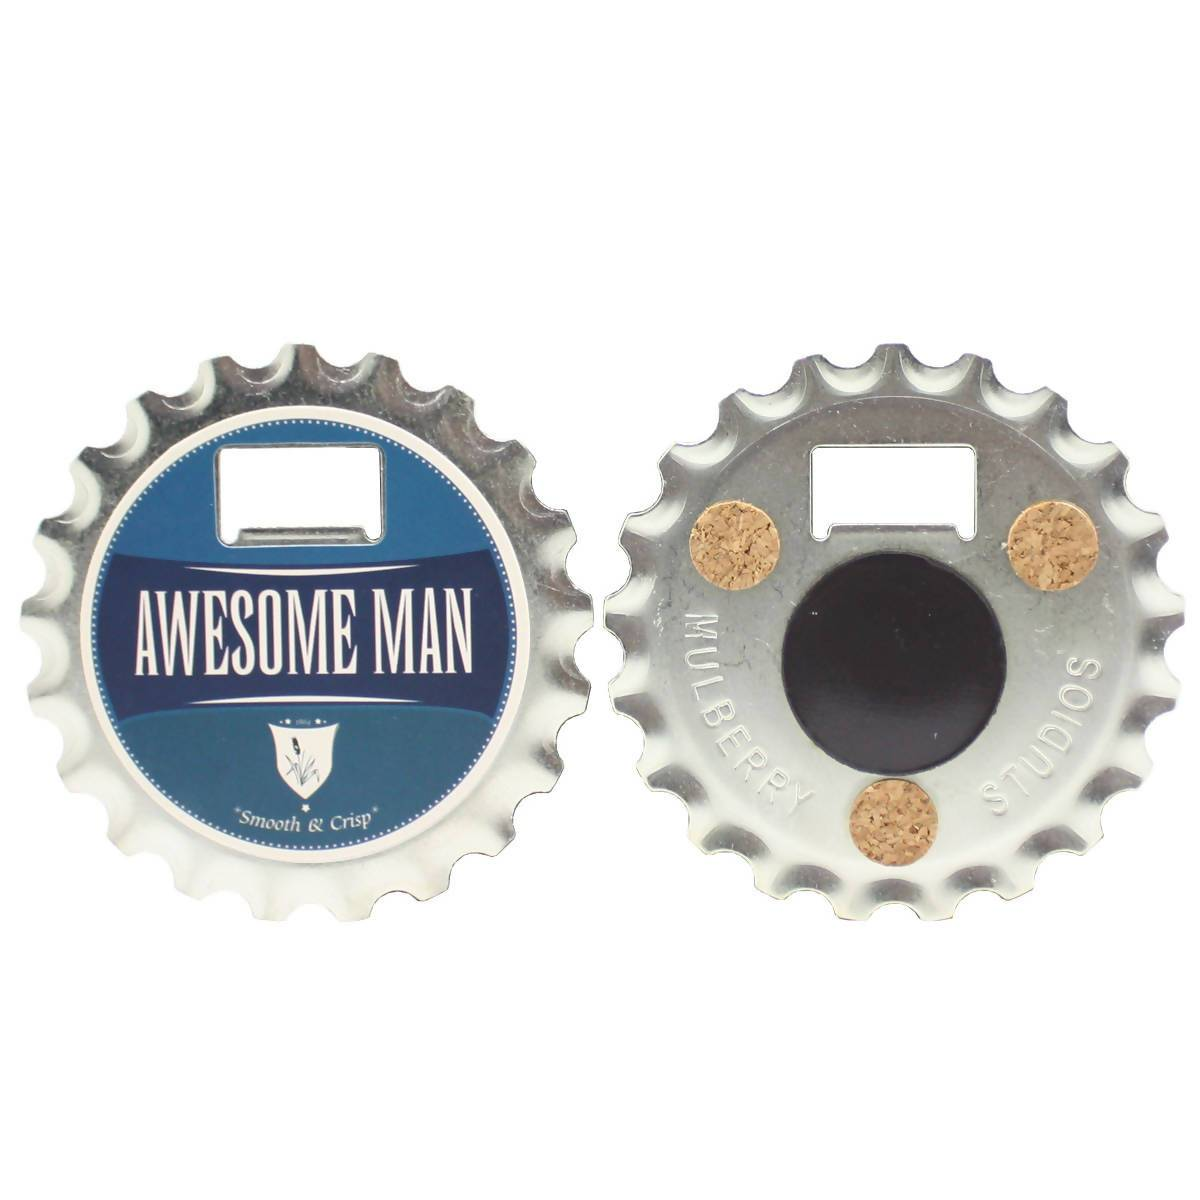 BOTTLE BUSTER - Best Bottle Opener : Awesome Man - Bottle Openers - La Belle Collection - Naiise